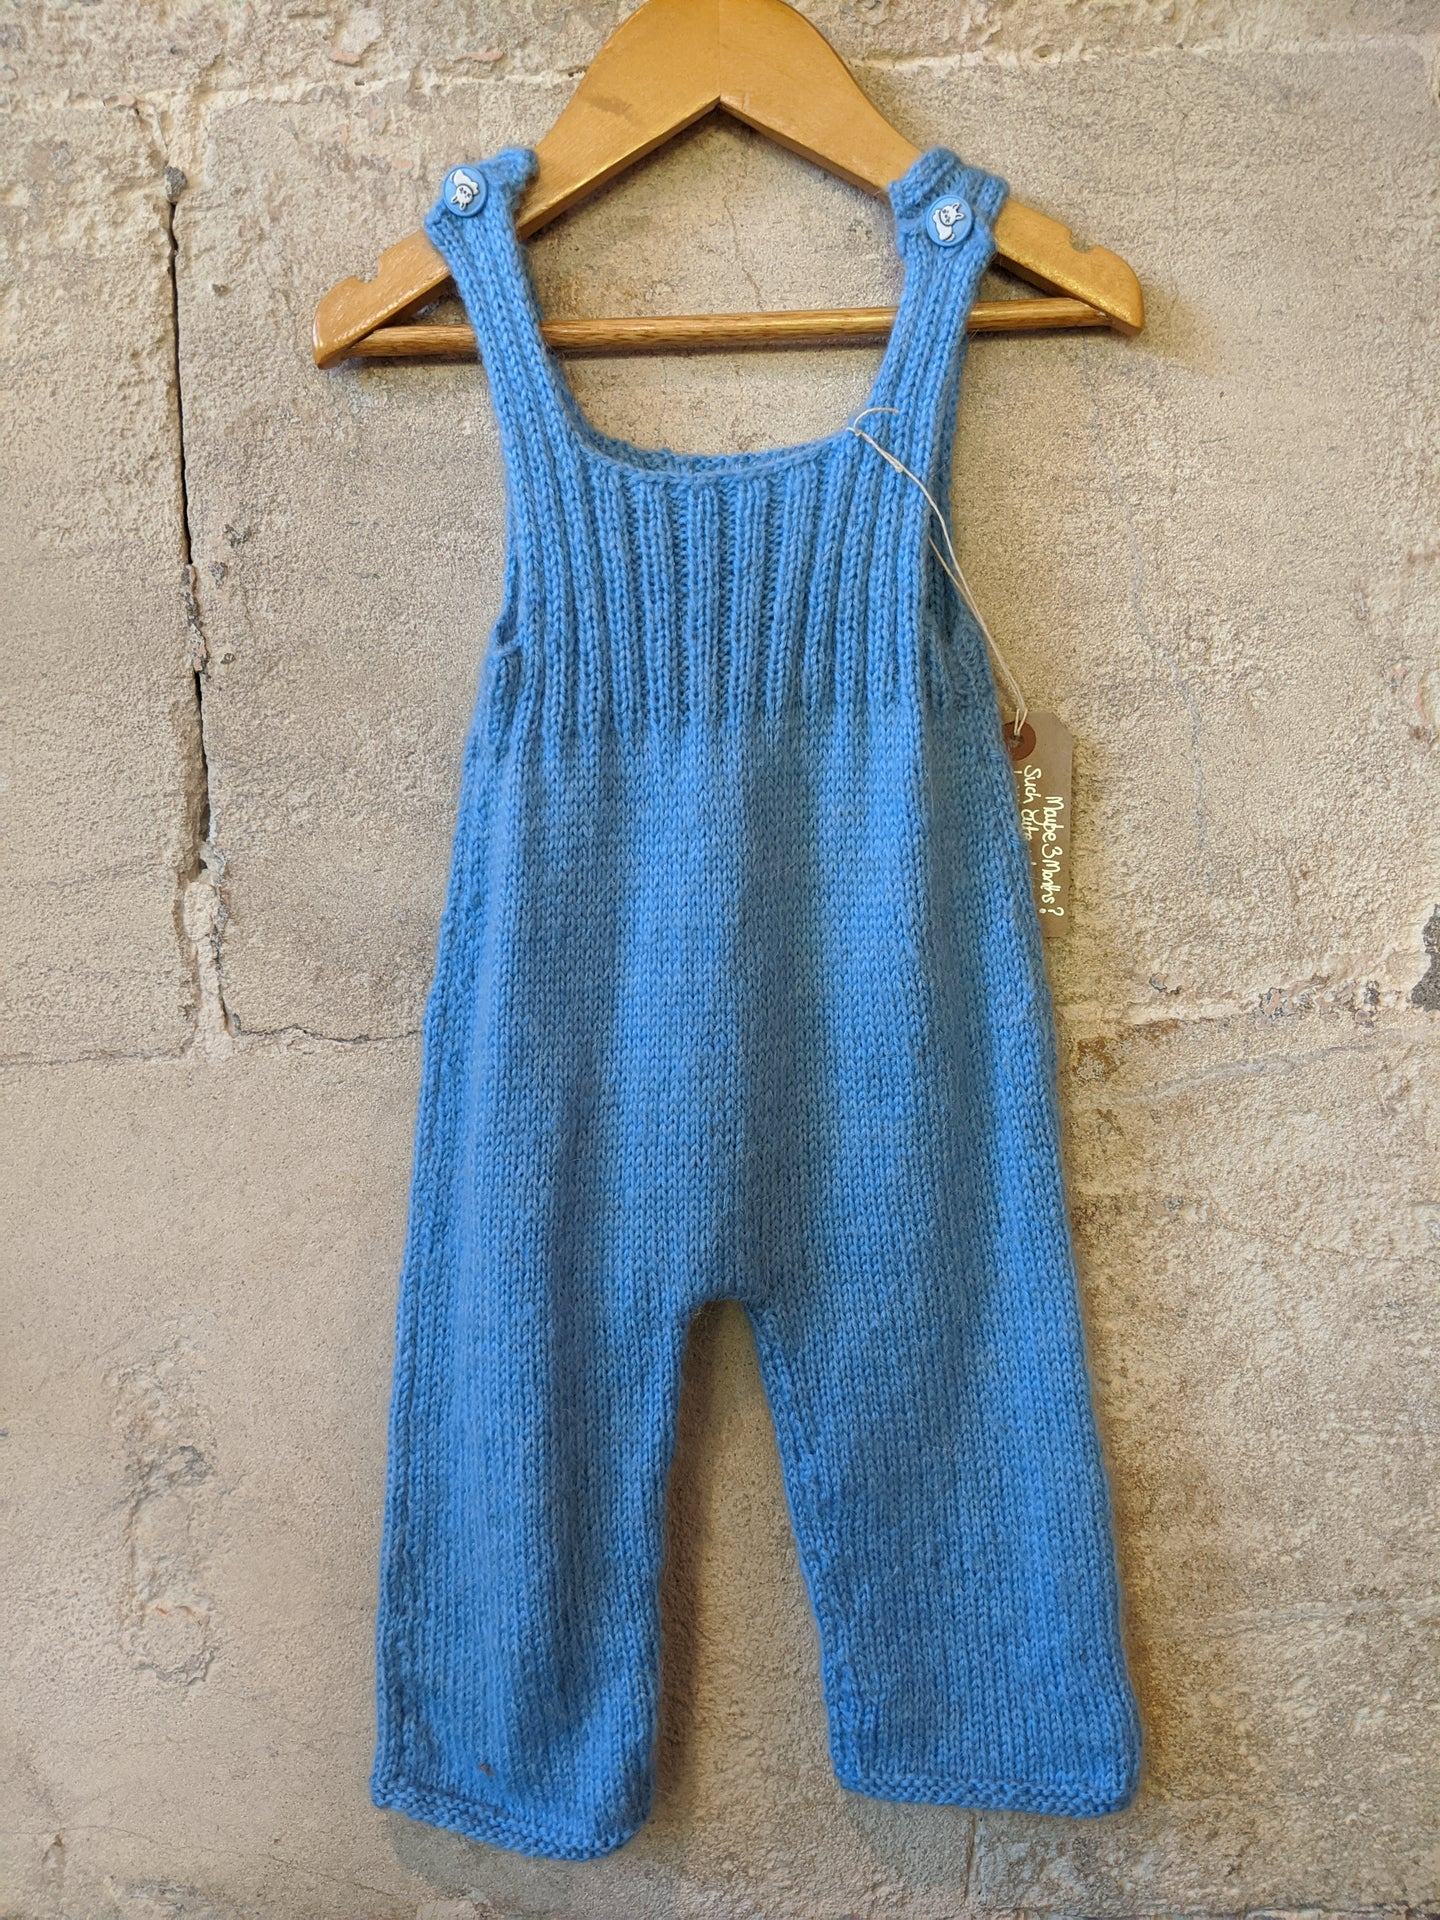 The Cutest Sky Blue Hand Knitted Dungarees - 3 Months